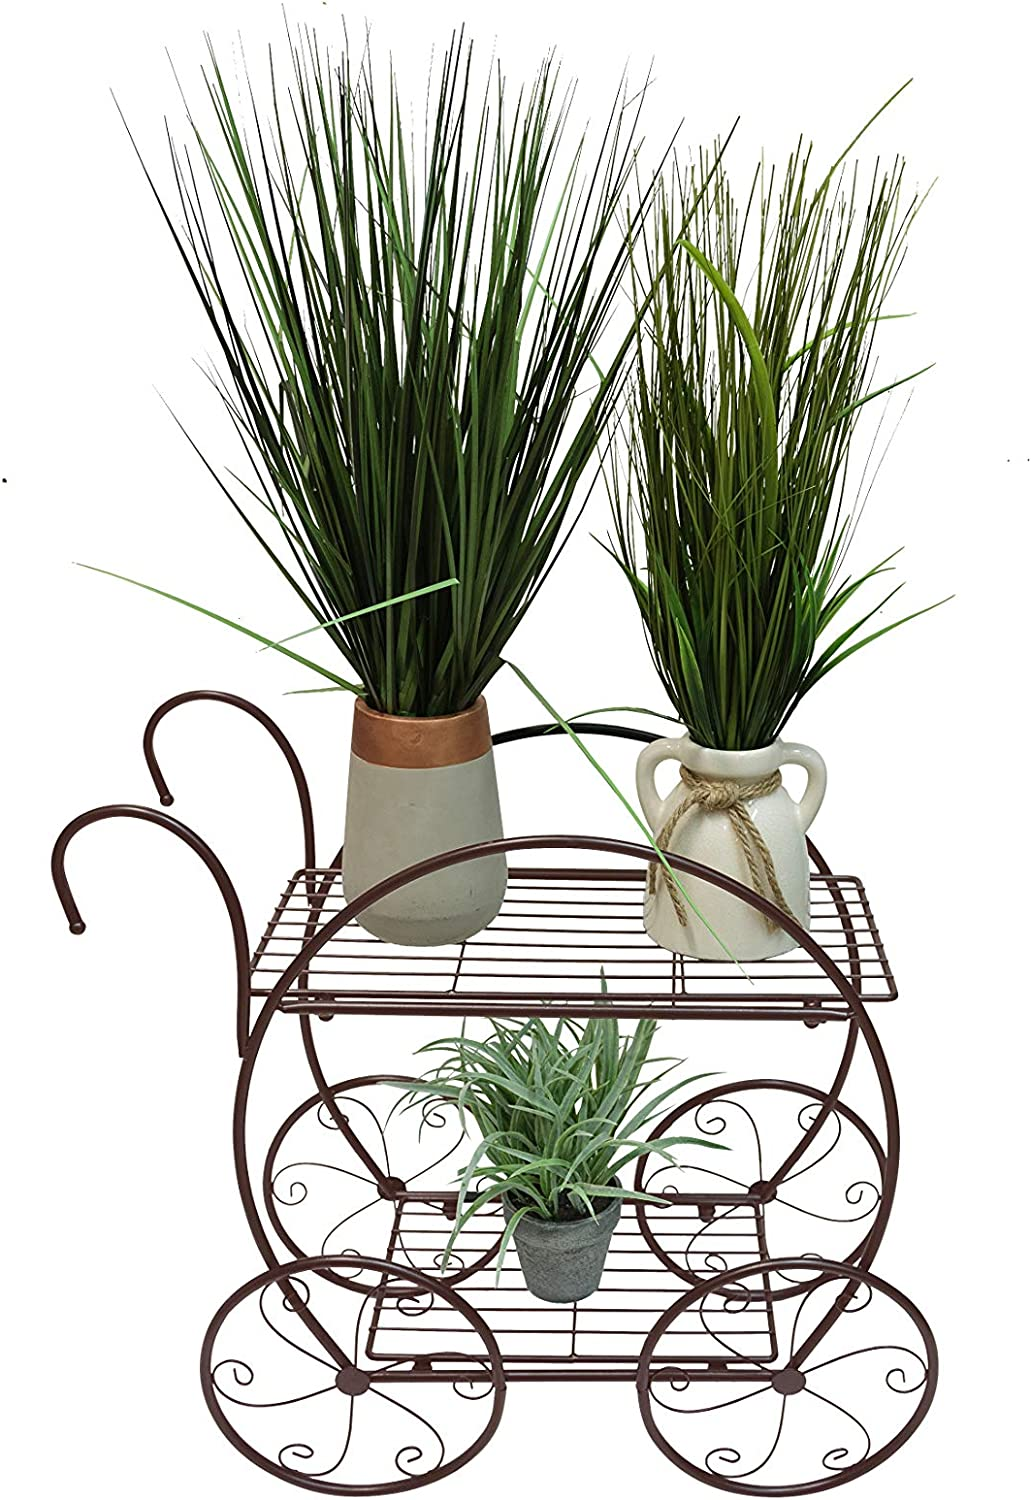 Useful. UH-FS309-BRN Decorative Two Tiered Flowerpot Cart - Decorative Wire Garden Stand with Two Shelves for Flowerpots and Planters